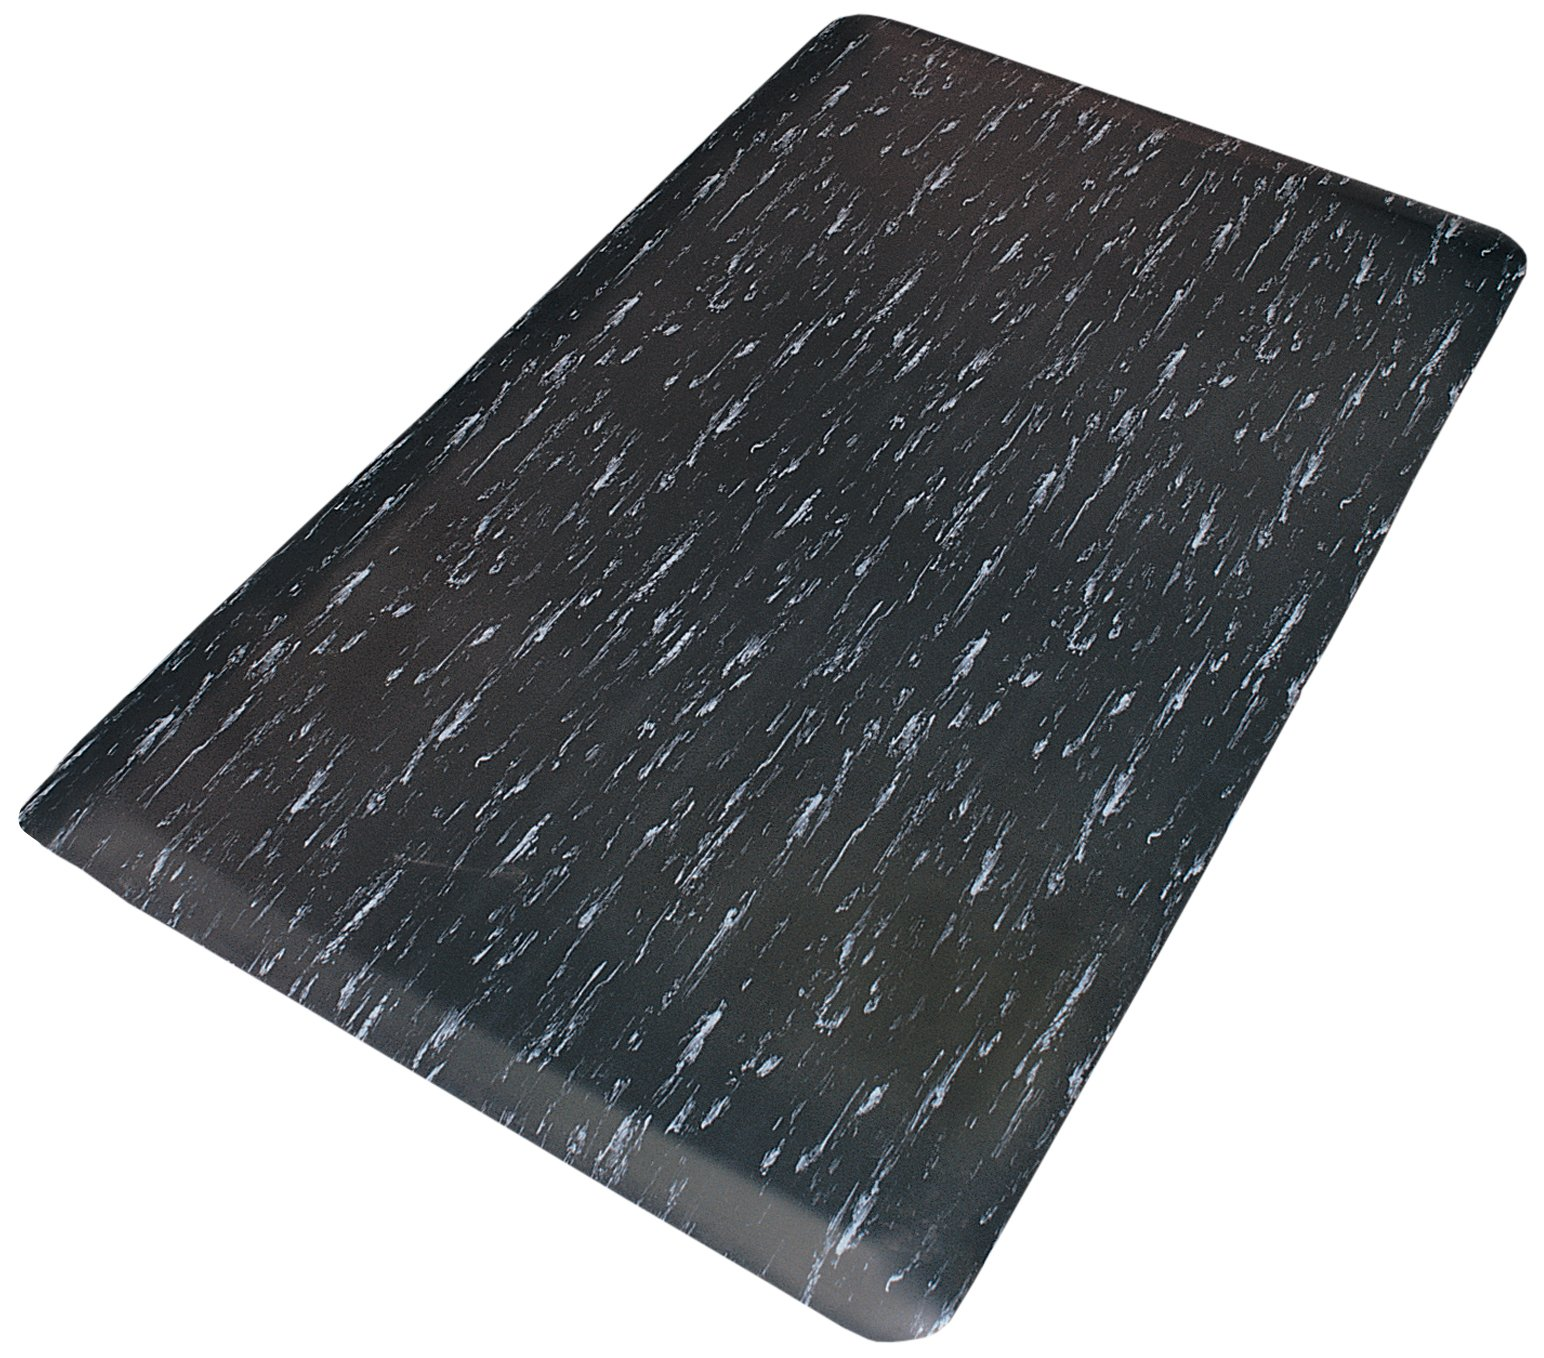 Rhino Mats TT-310BW Marbleized Tile Top Anti-Fatigue Mat, 3' Width x 10' Length x 1/2'' Thickness, Black/White